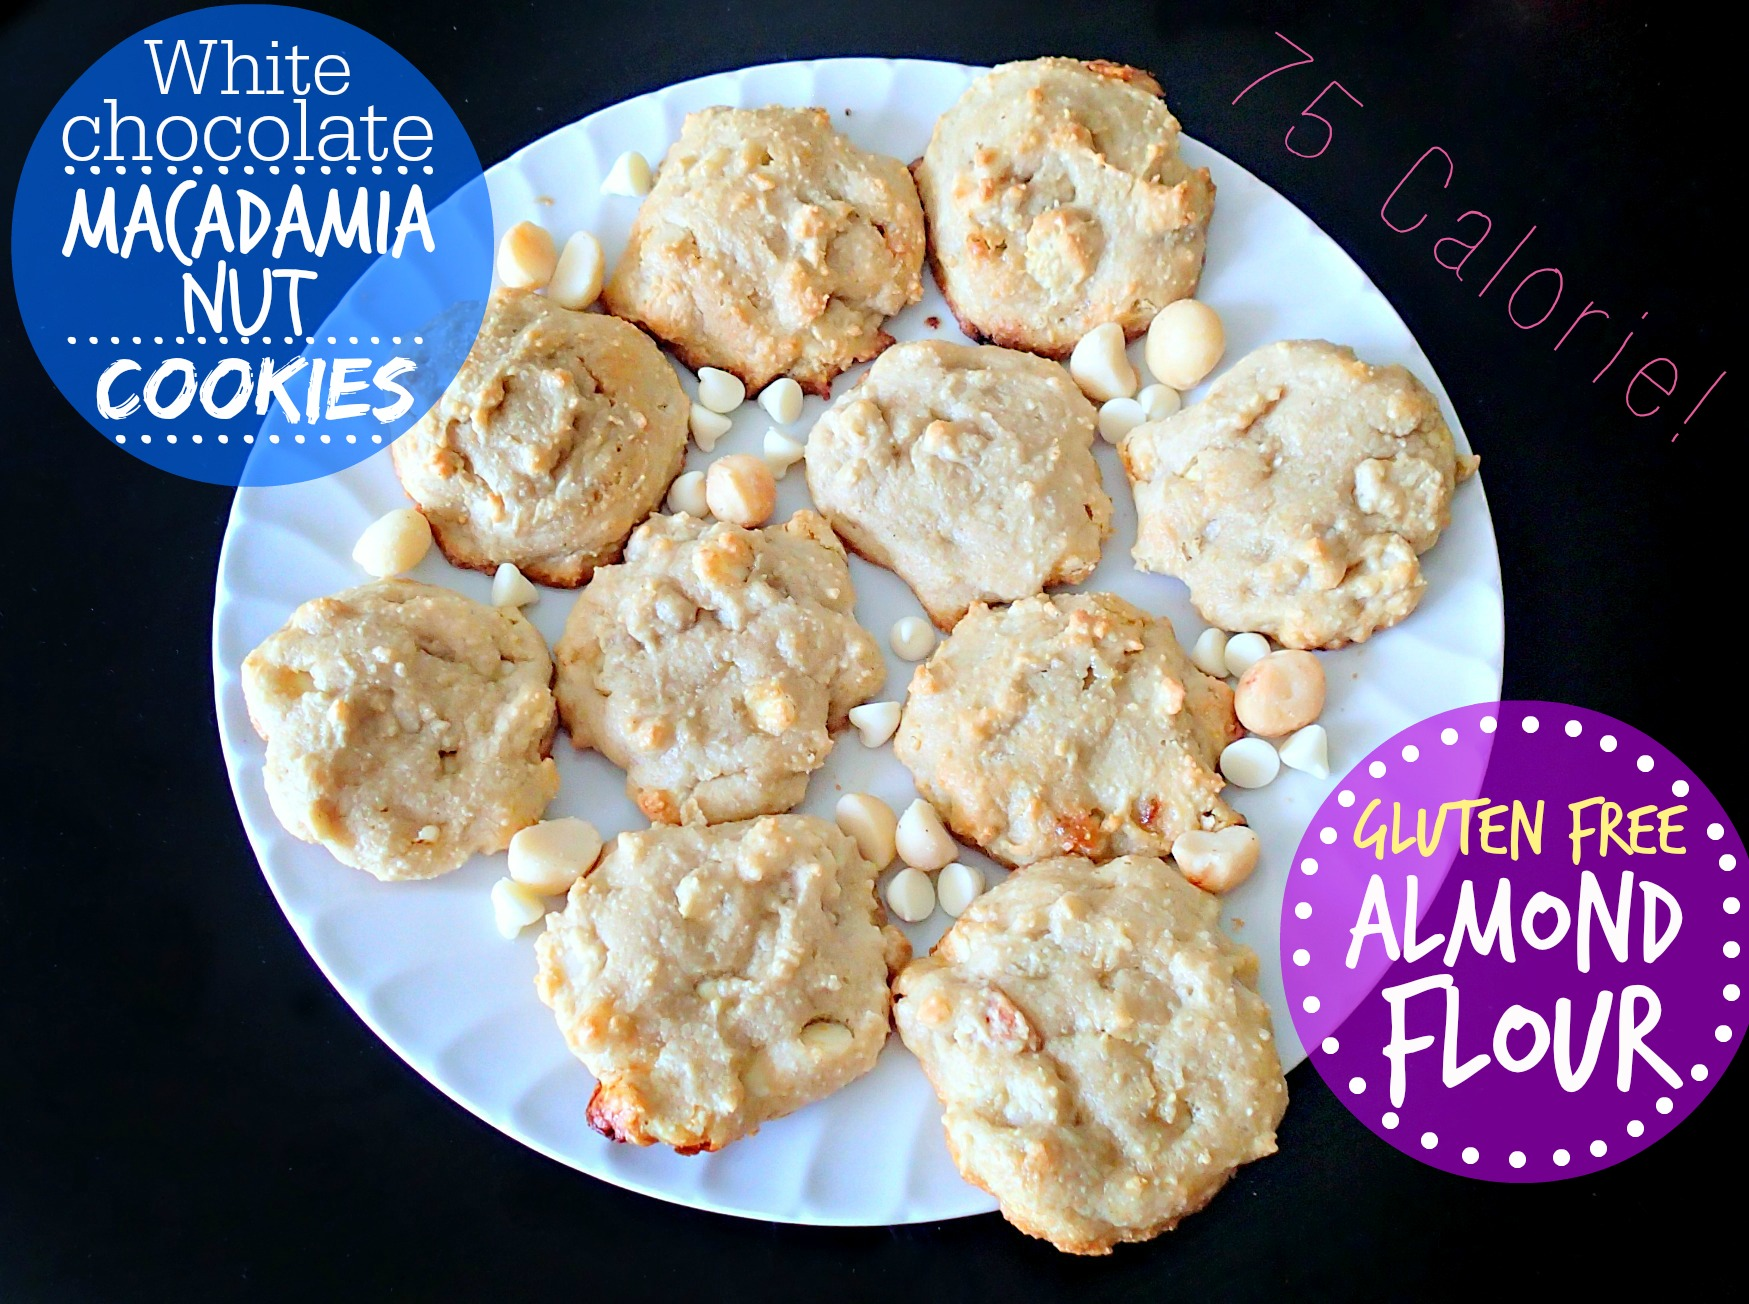 White Chocolate Macadamia Nut Cookies Made With Almond Flour